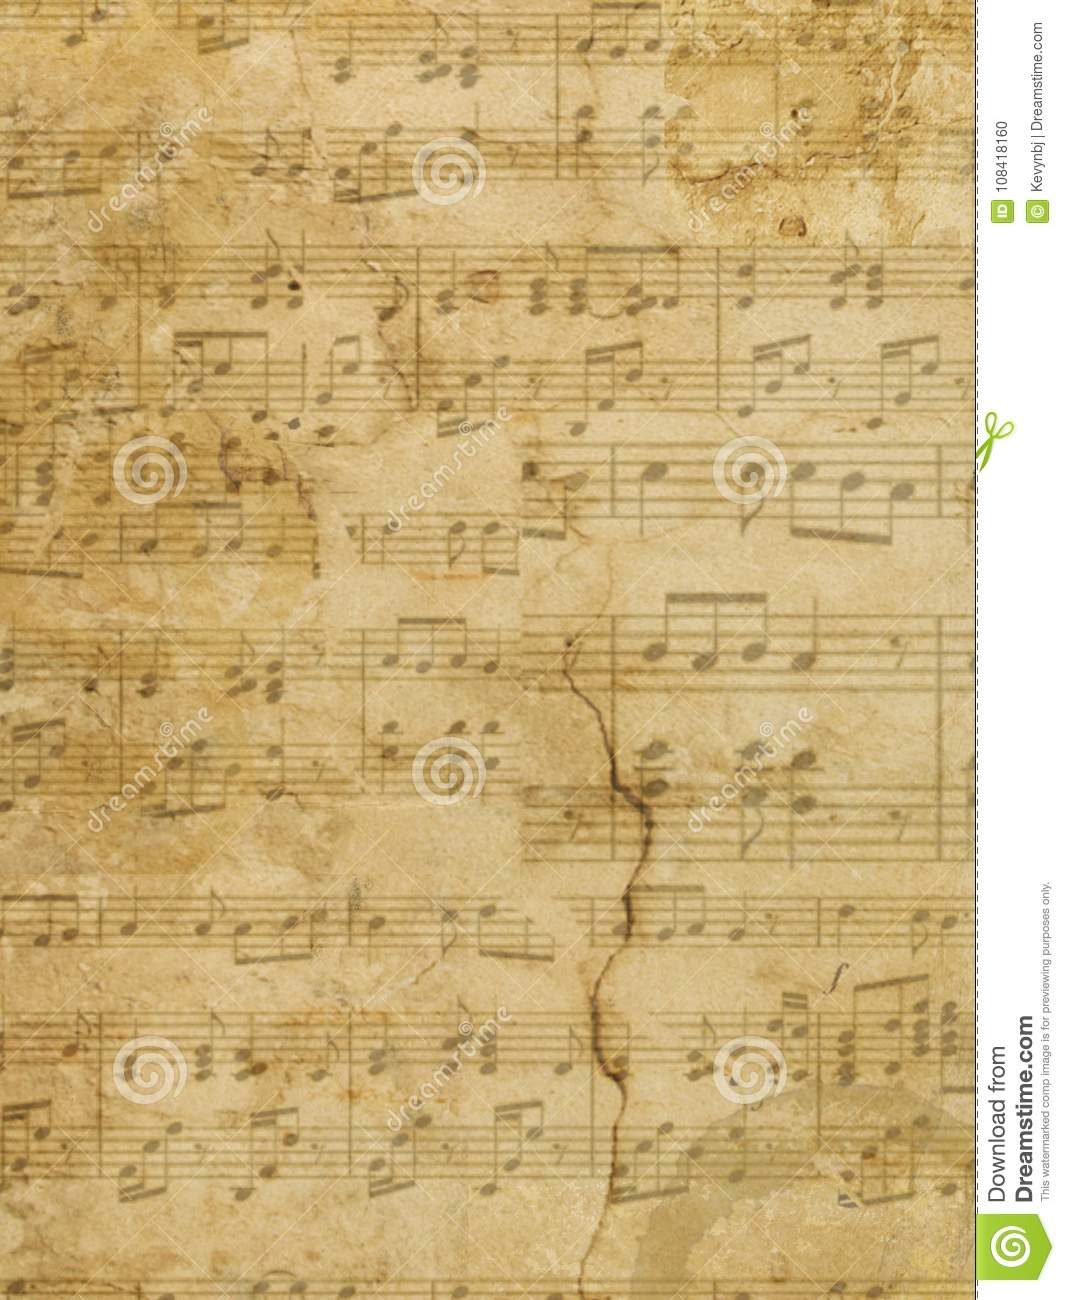 Download Music Parchment Paper Grunge Stock Photo